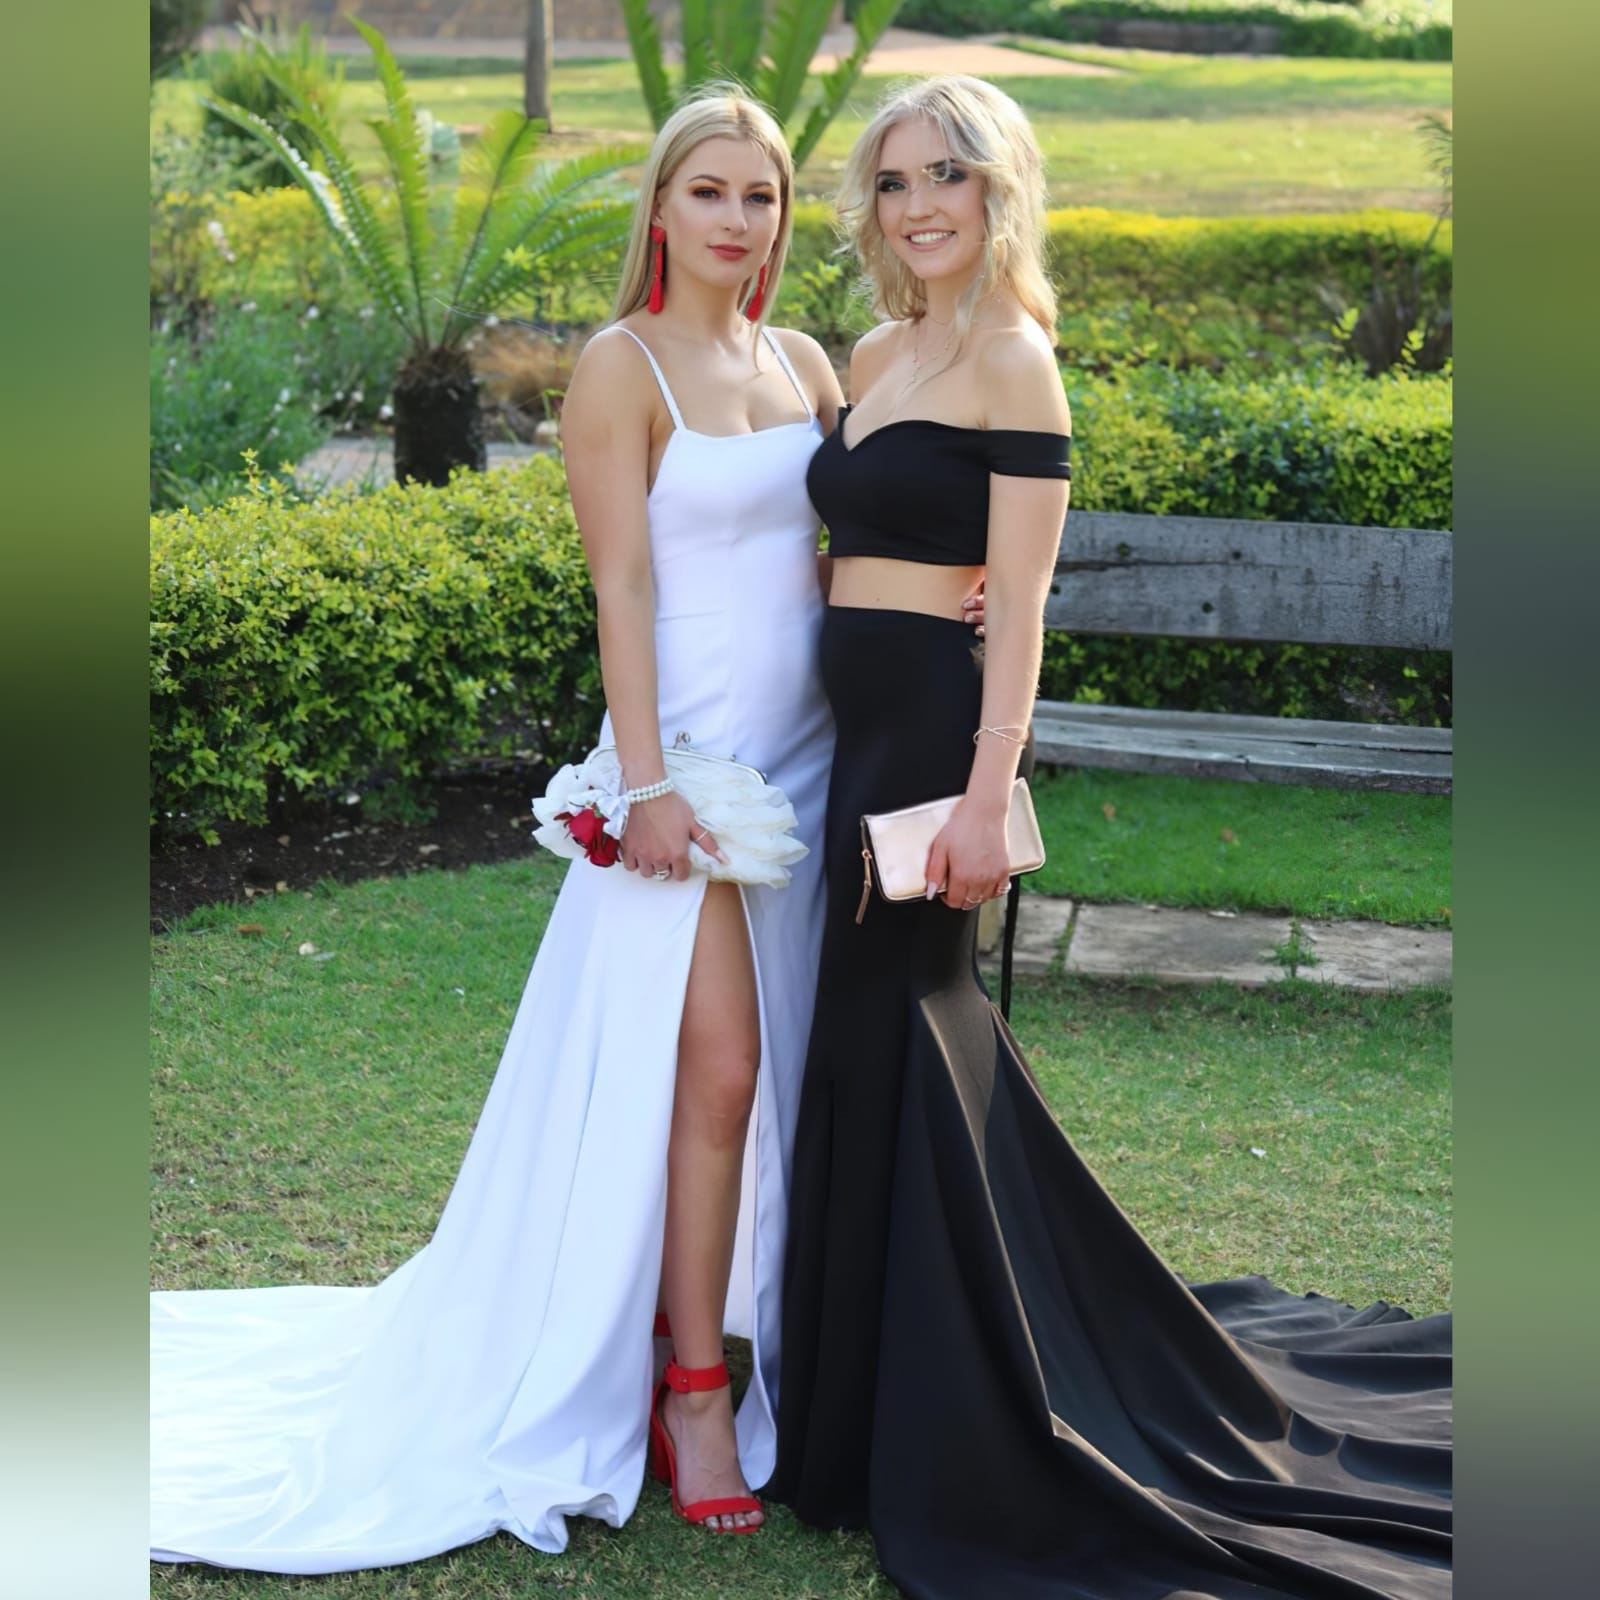 2 piece black off shoulder matric dance dress with a crop top 4 2 piece black off shoulder matric dance dress with a crop top. Lace-up back. Long skirt with knee length slit and a train.